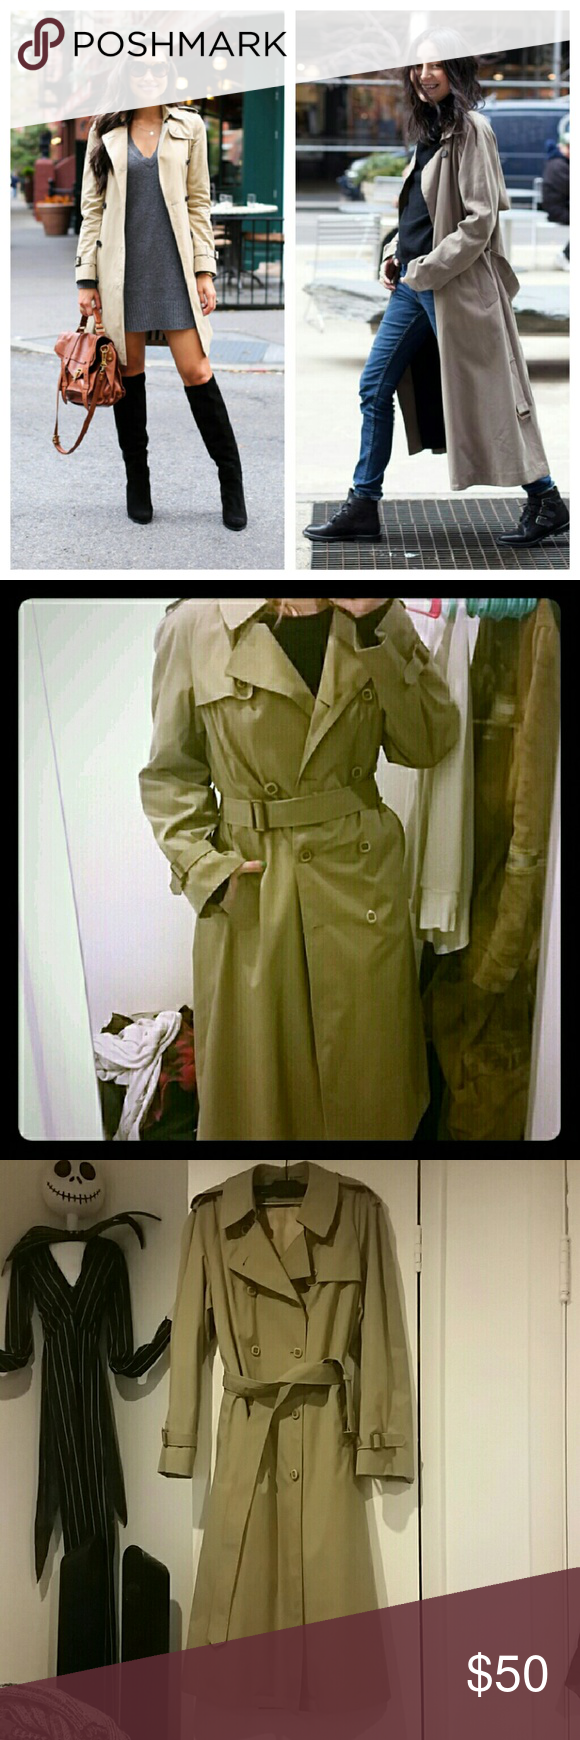 Vintage trench coat This coat is beautiful. It's missing the inner lining so I'm not sure the size or brand name. Will fit small or medium. Measurements upon request.  Will go cheaper on merc :) London Fog Jackets & Coats Trench Coats